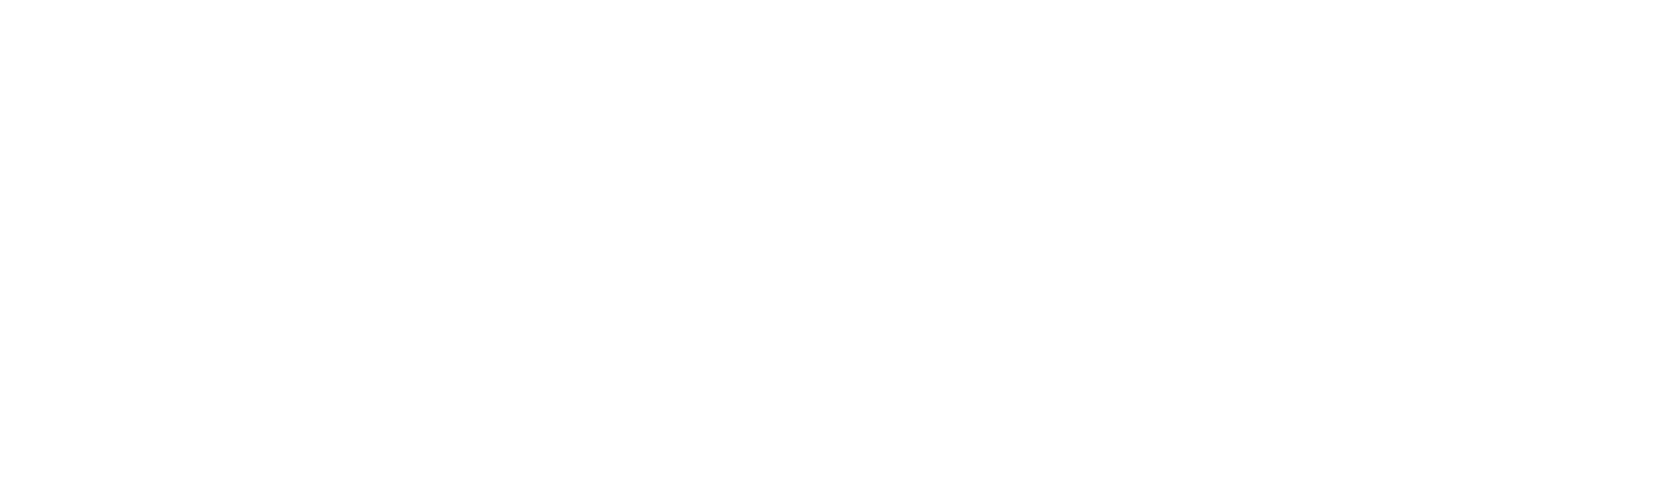 Positively Powering Brands